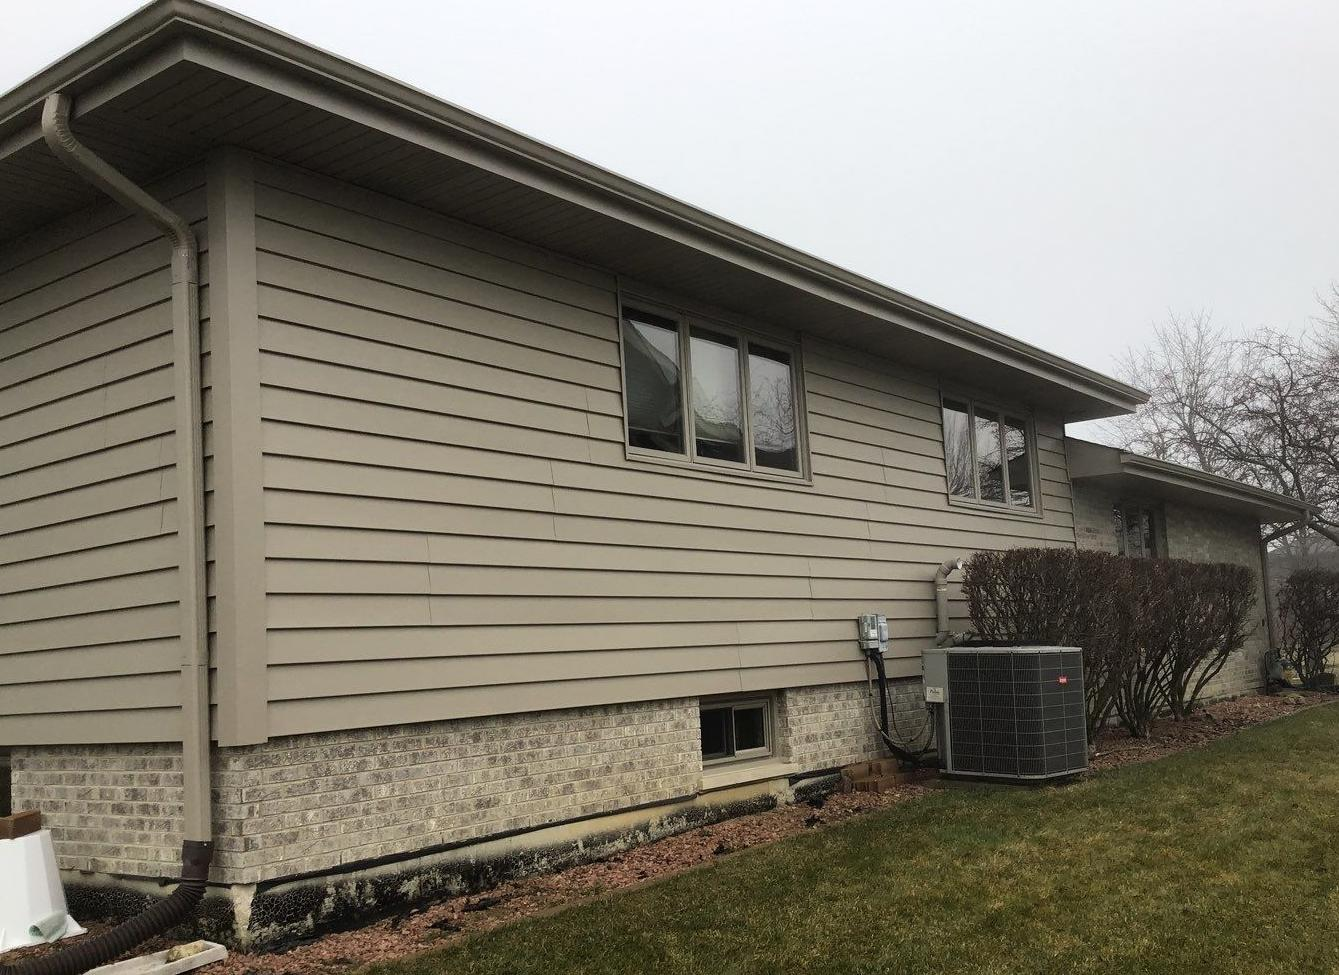 Vertical to horizontal Siding Replacement in Lemont - After Photo